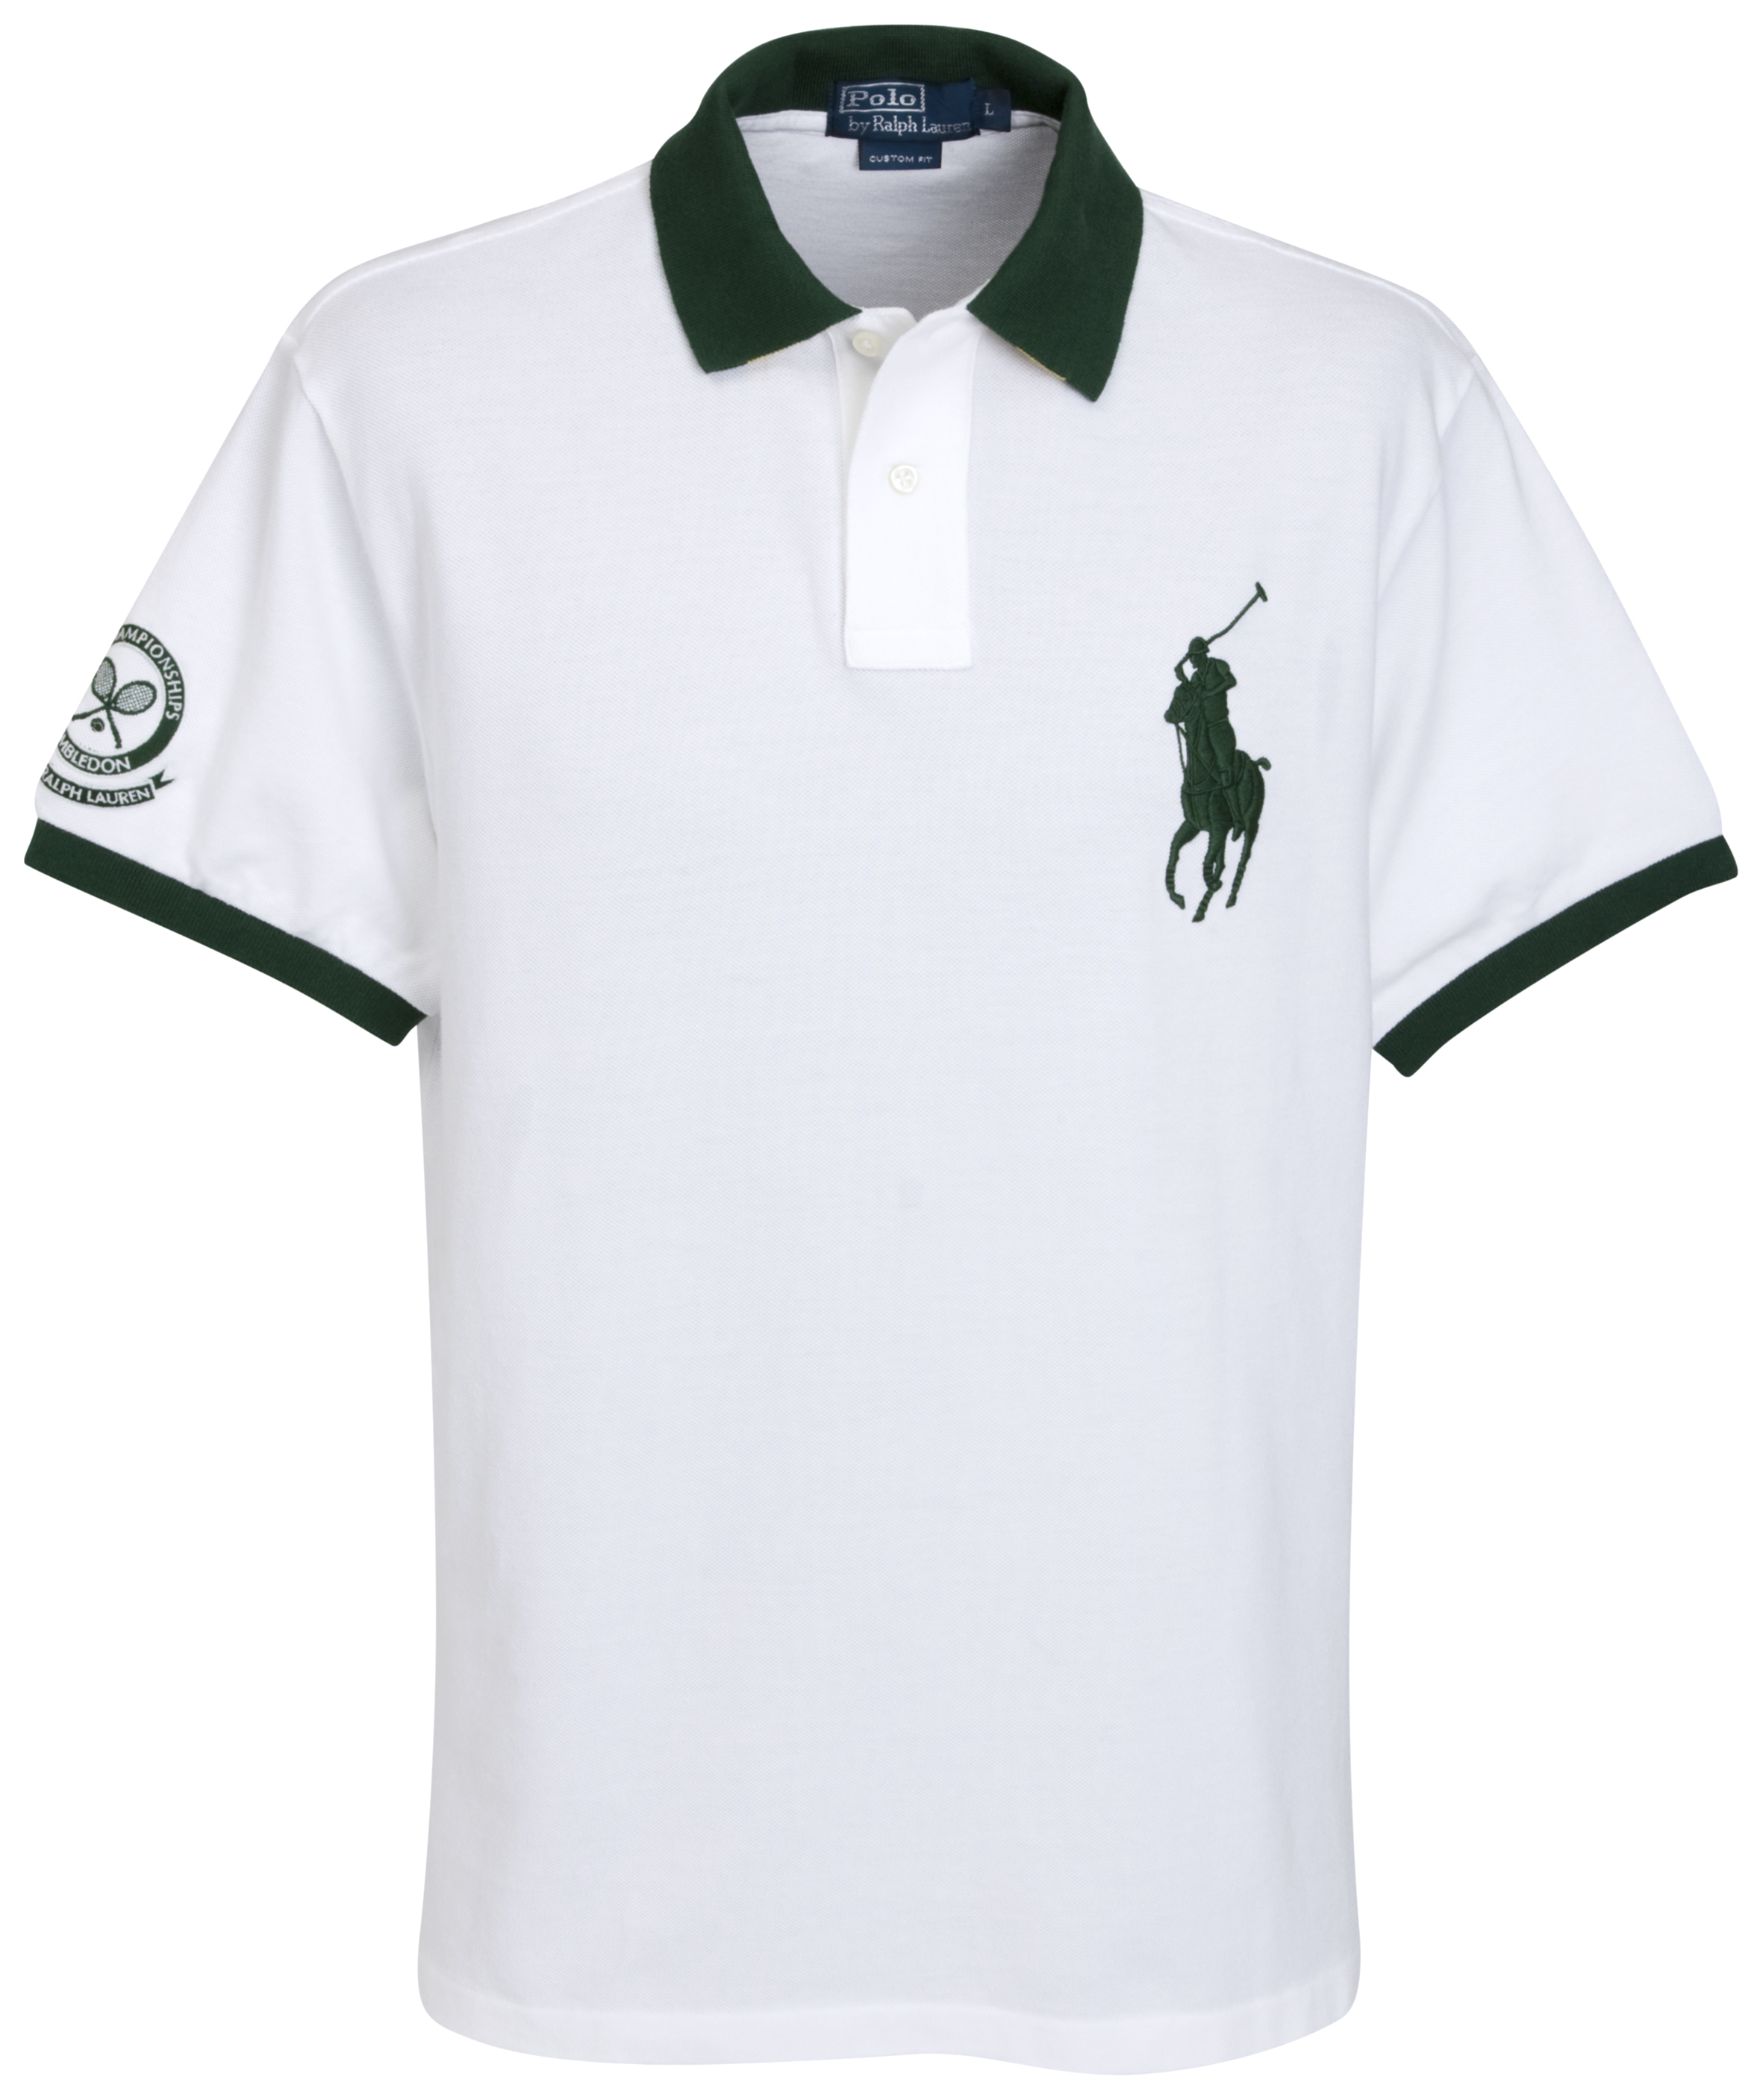 Polo Ralph Lauren Polo Tipped Collar Polo  - White